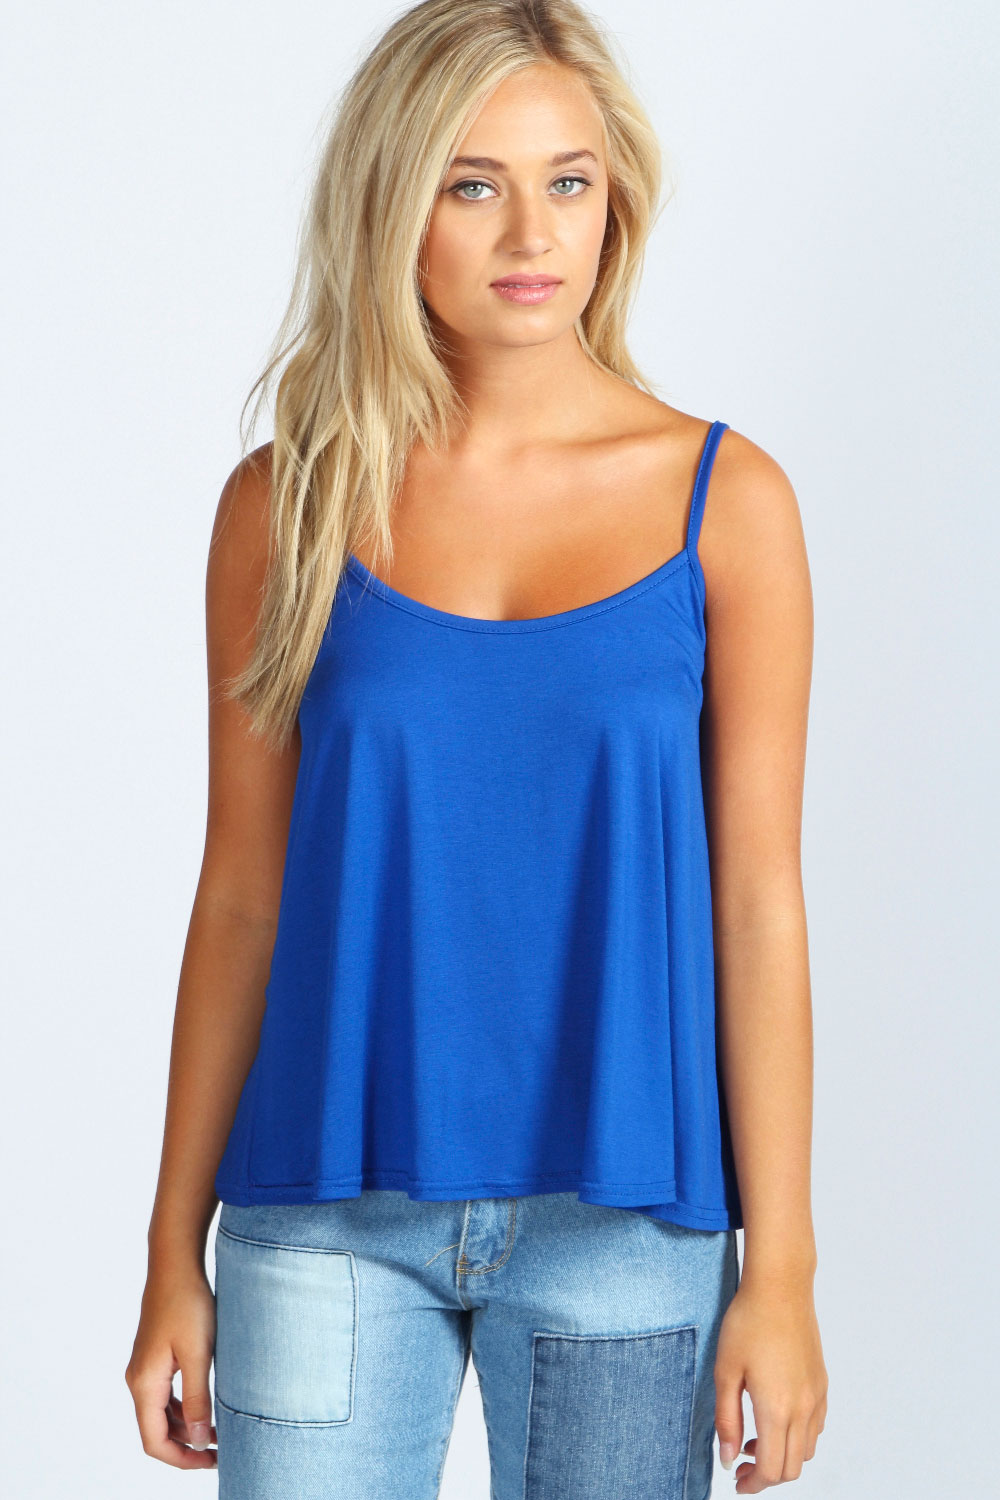 Online shopping from a great selection at Clothing Store.